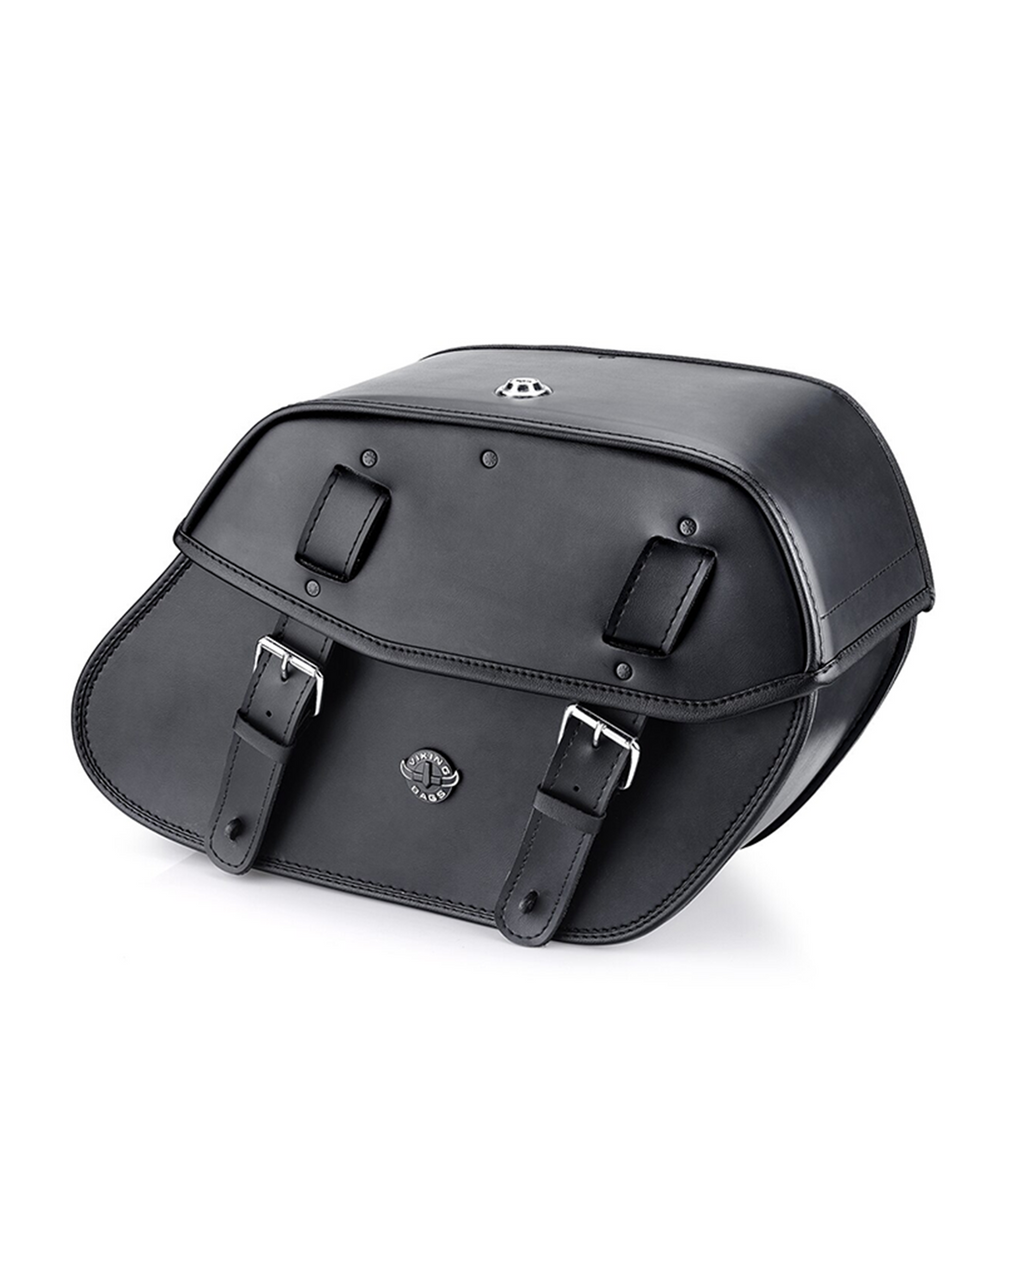 Viking Odin Large Motorcycle Saddlebags For Harley Softail Night Train FXSTB Main View